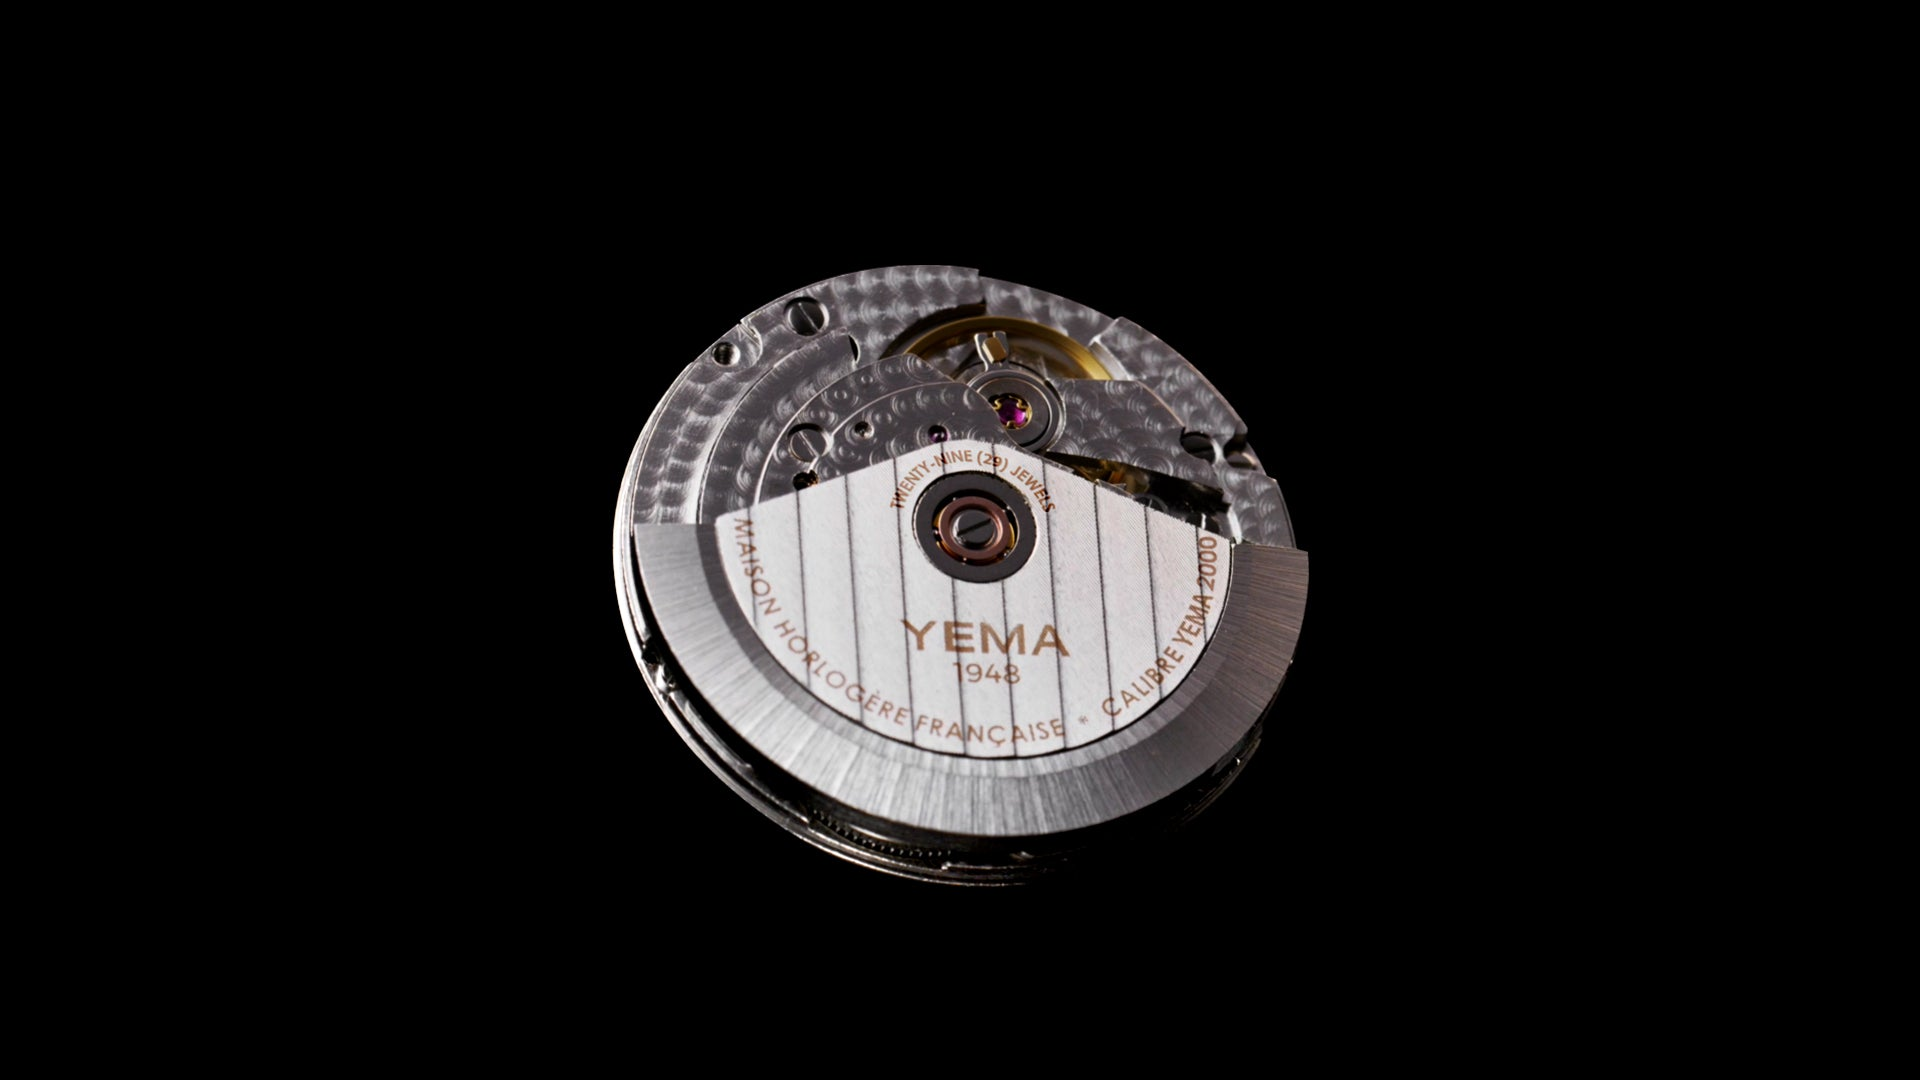 YEMA2000 In-house Caliber is now available!